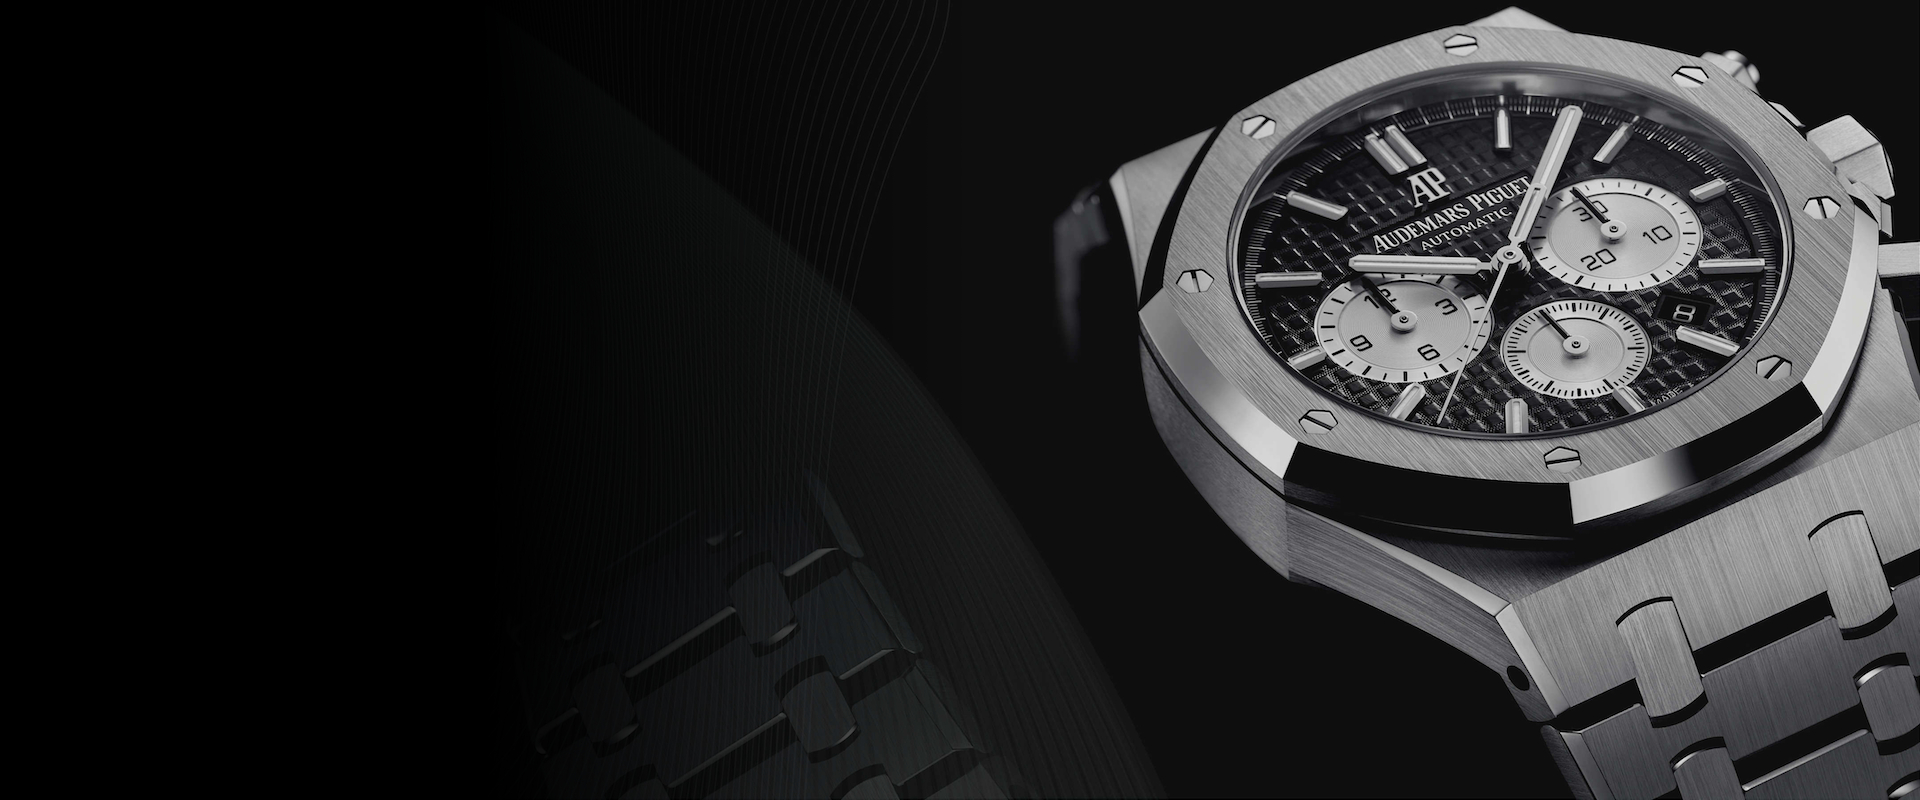 Audemars Piguet Royal Oak Chronograph / 1